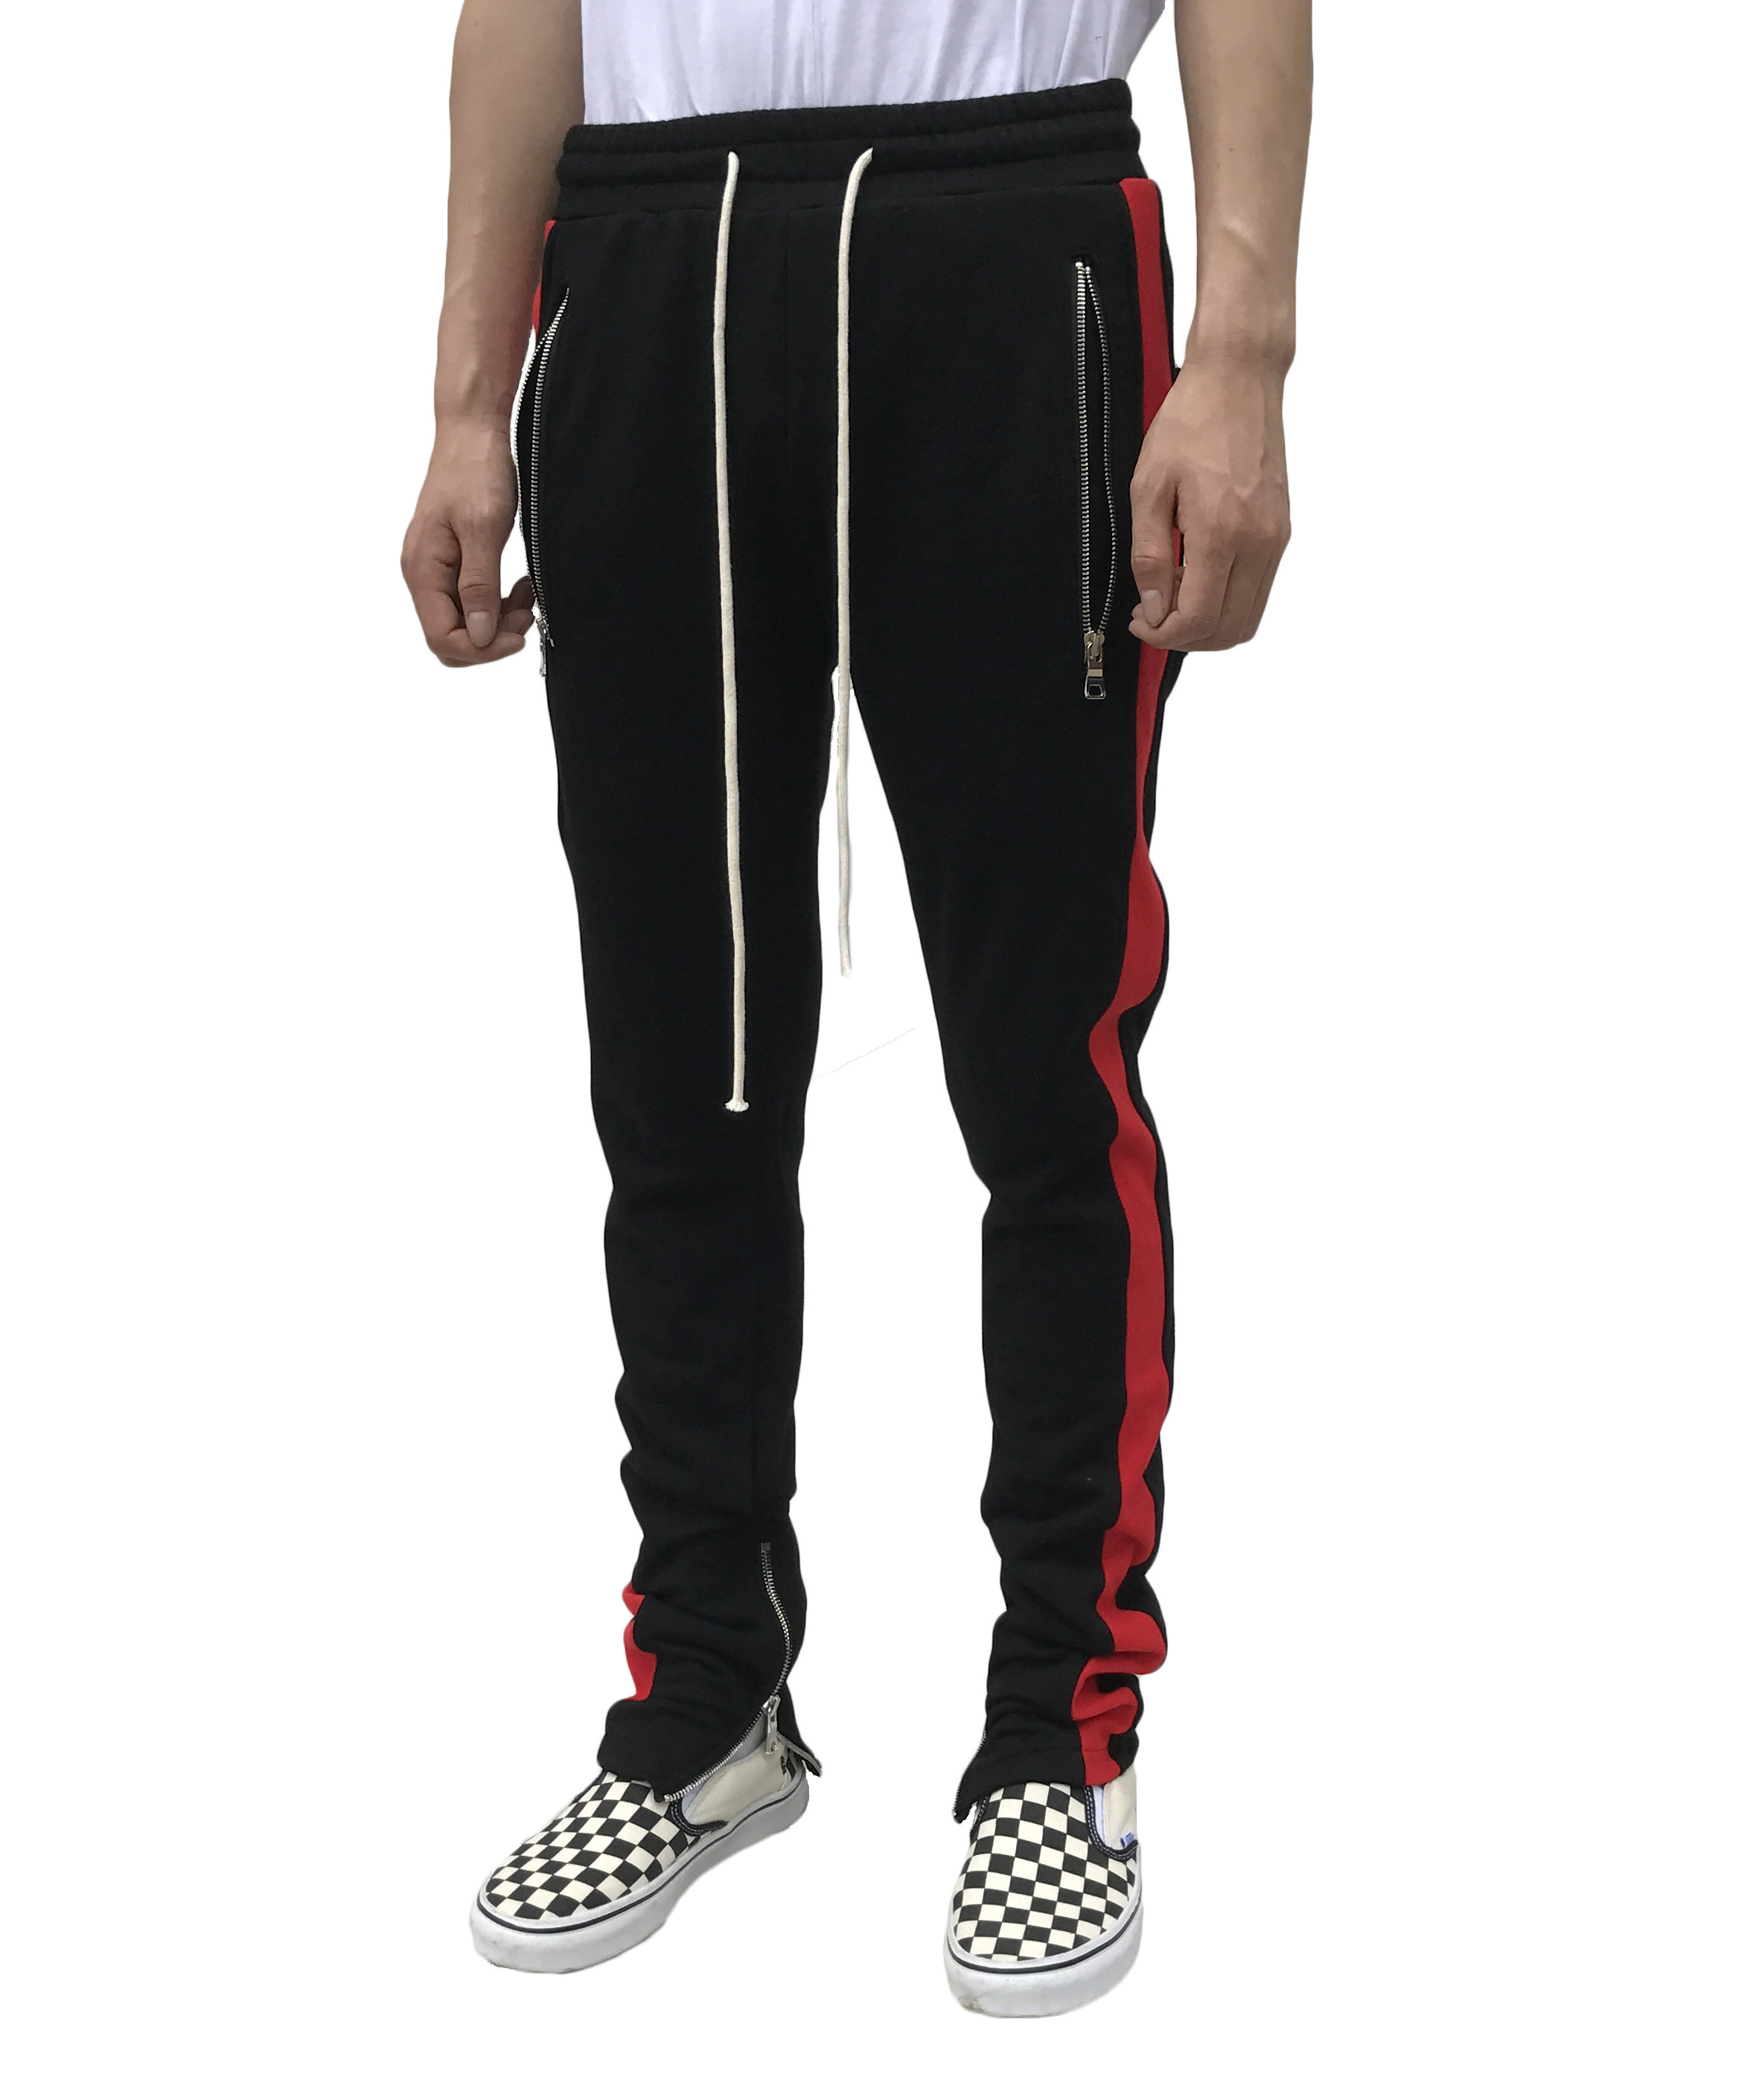 Zip Track Pant - Red Panel